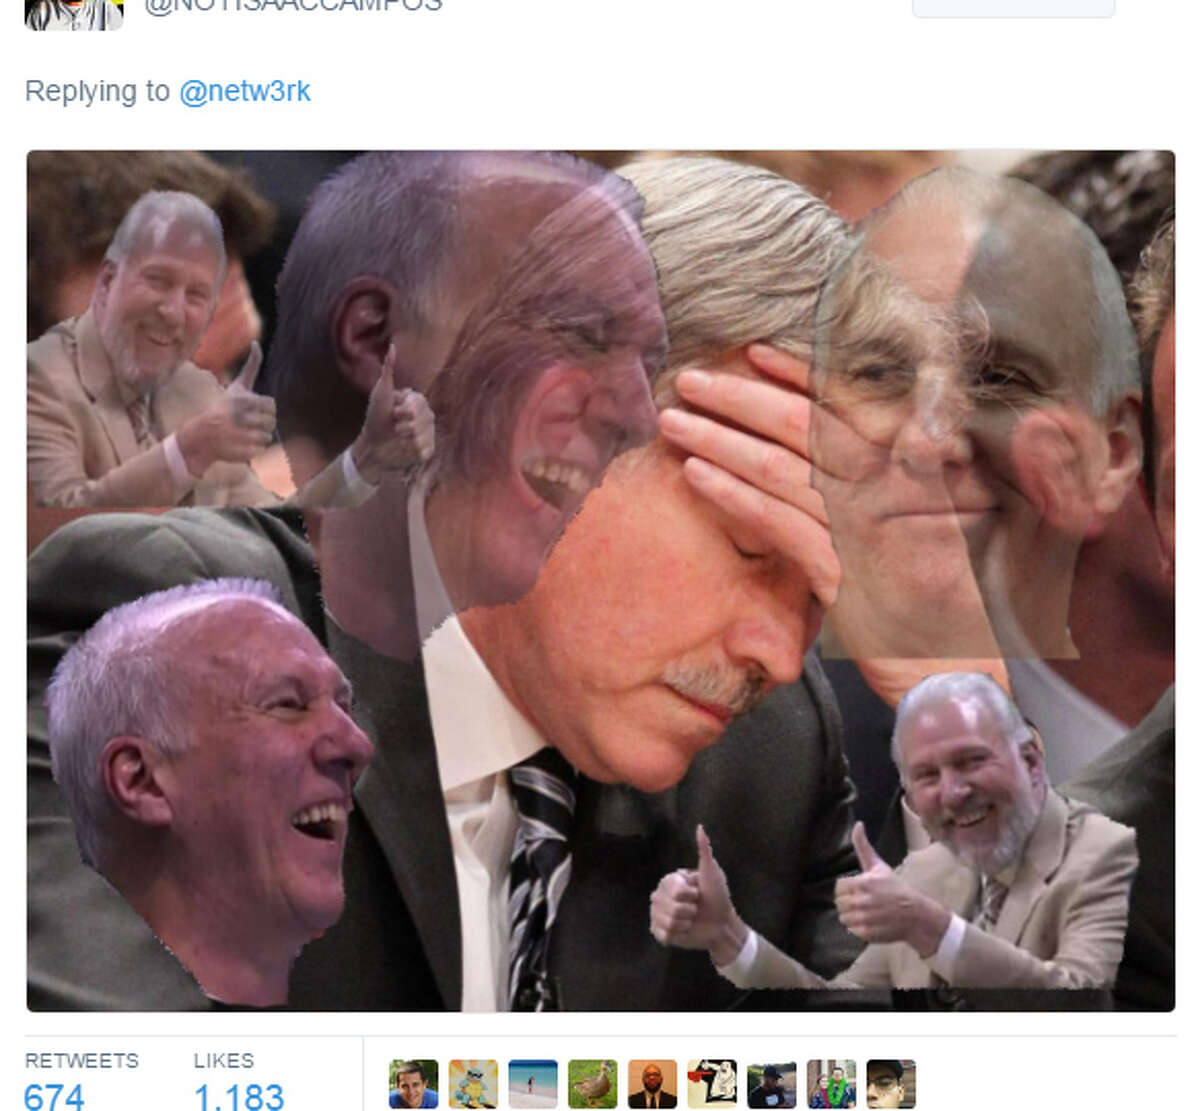 PHOTOS: Memes about the Rockets' blowout loss to the Spurs on Thursday night. Source: Twitter